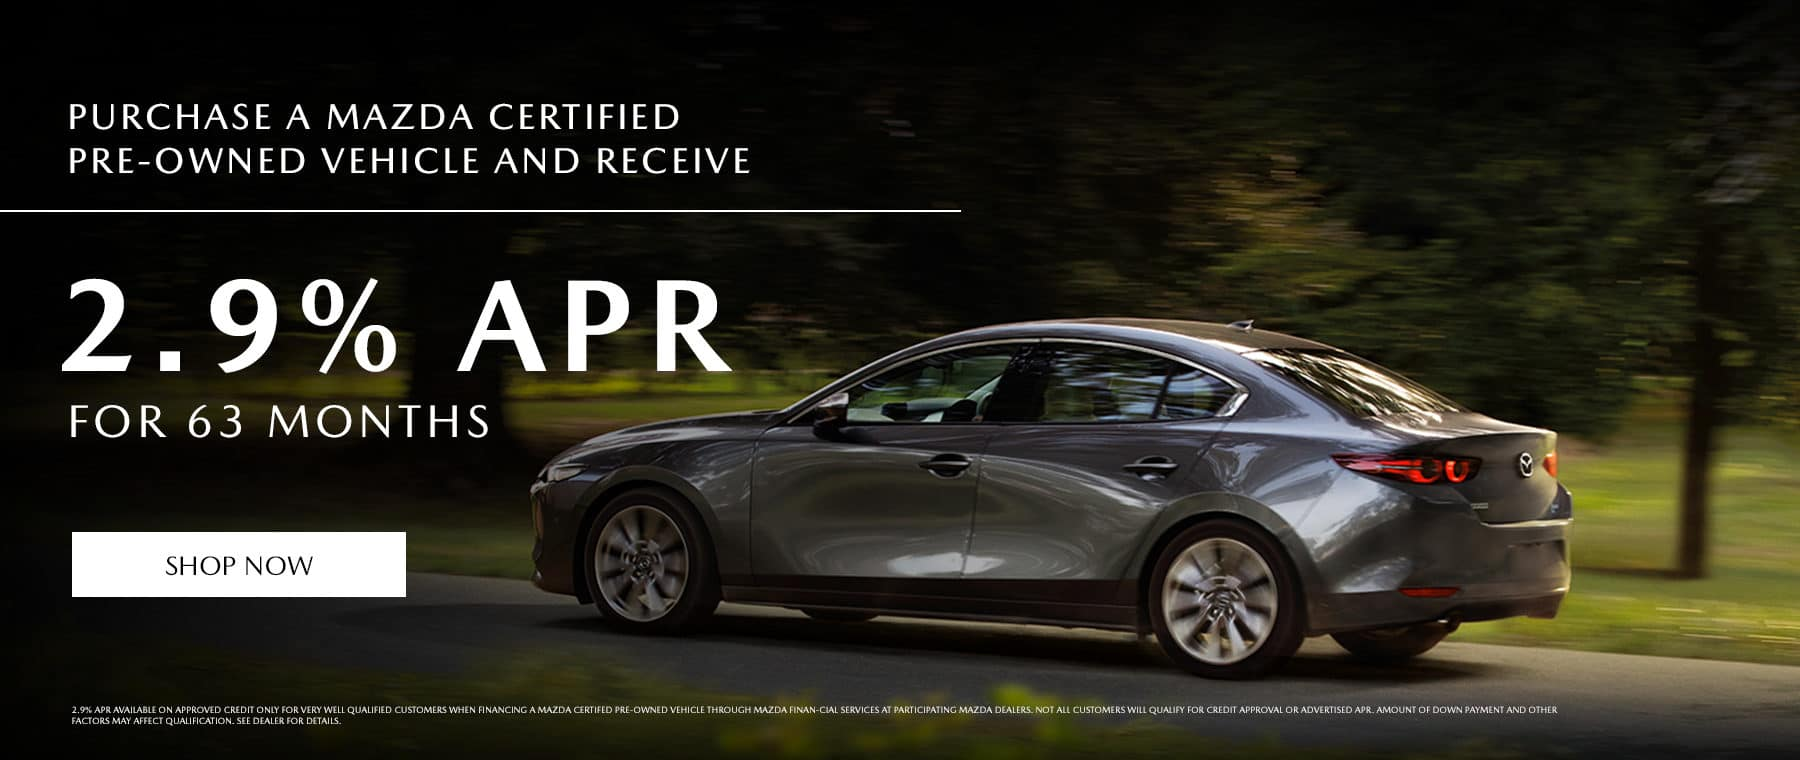 Purchase a Mazda Certified Pre-Owned vehicle and receive 2.9% APR for 63 months.